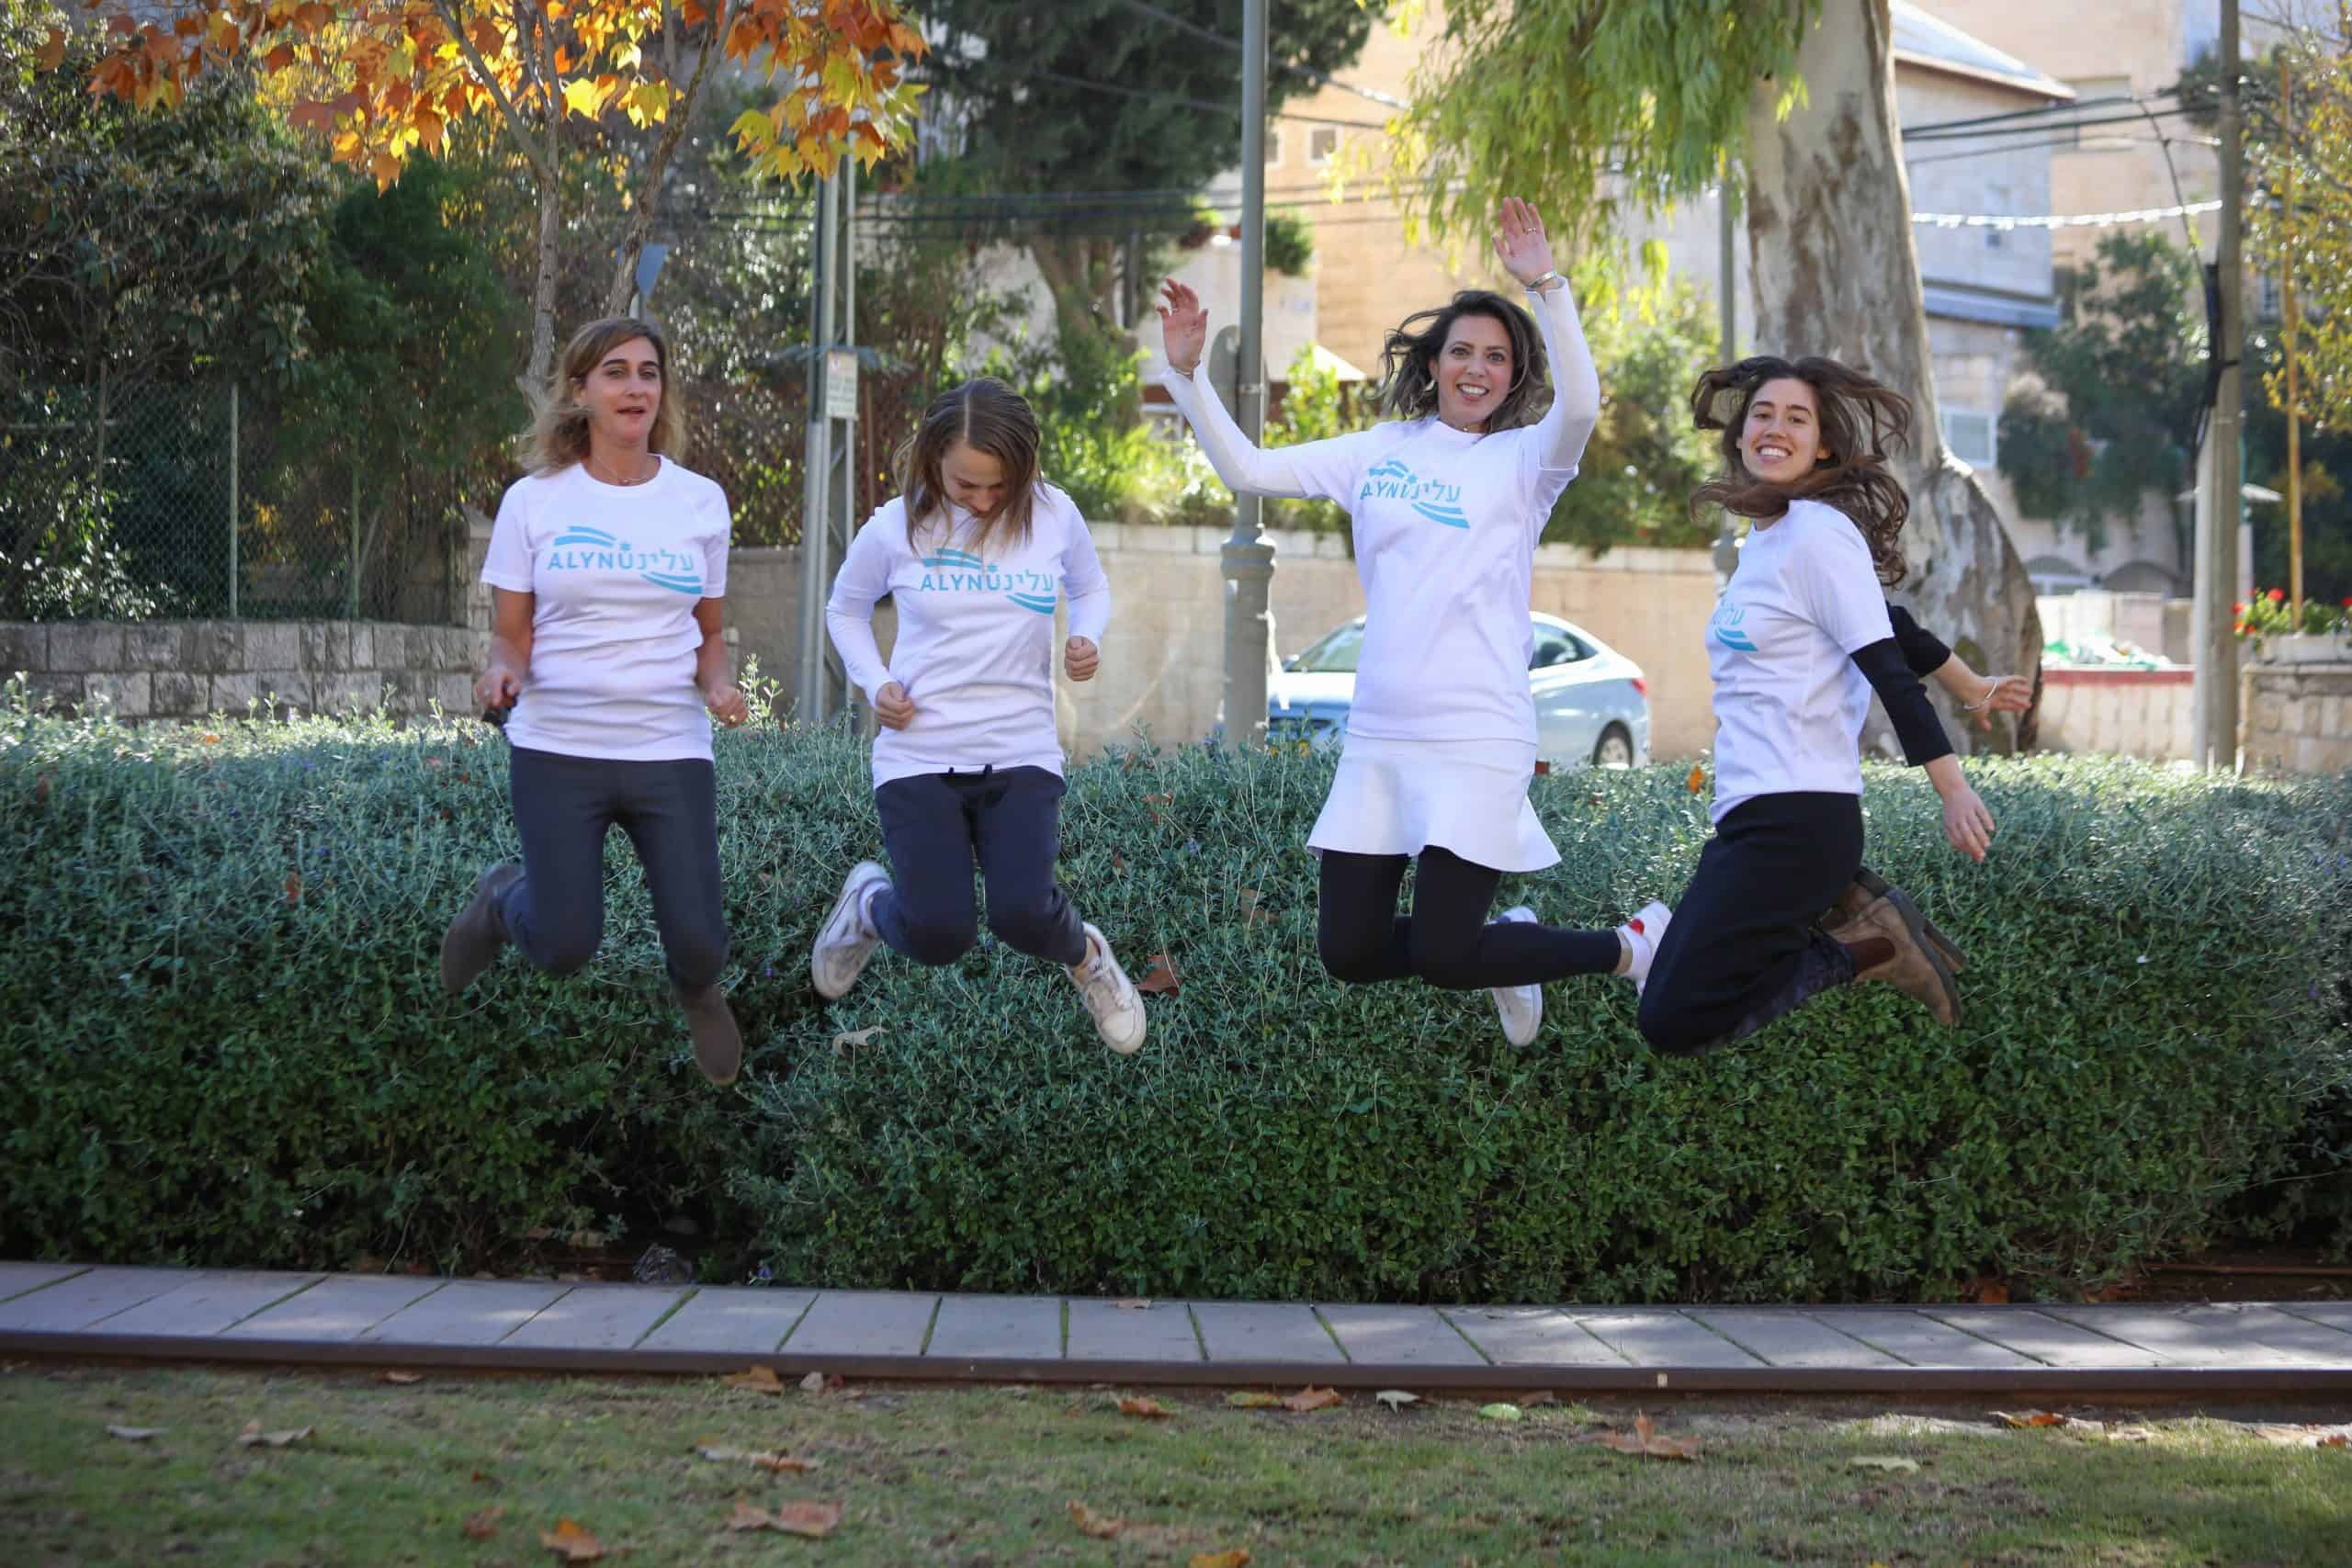 4 girls jumping in the air